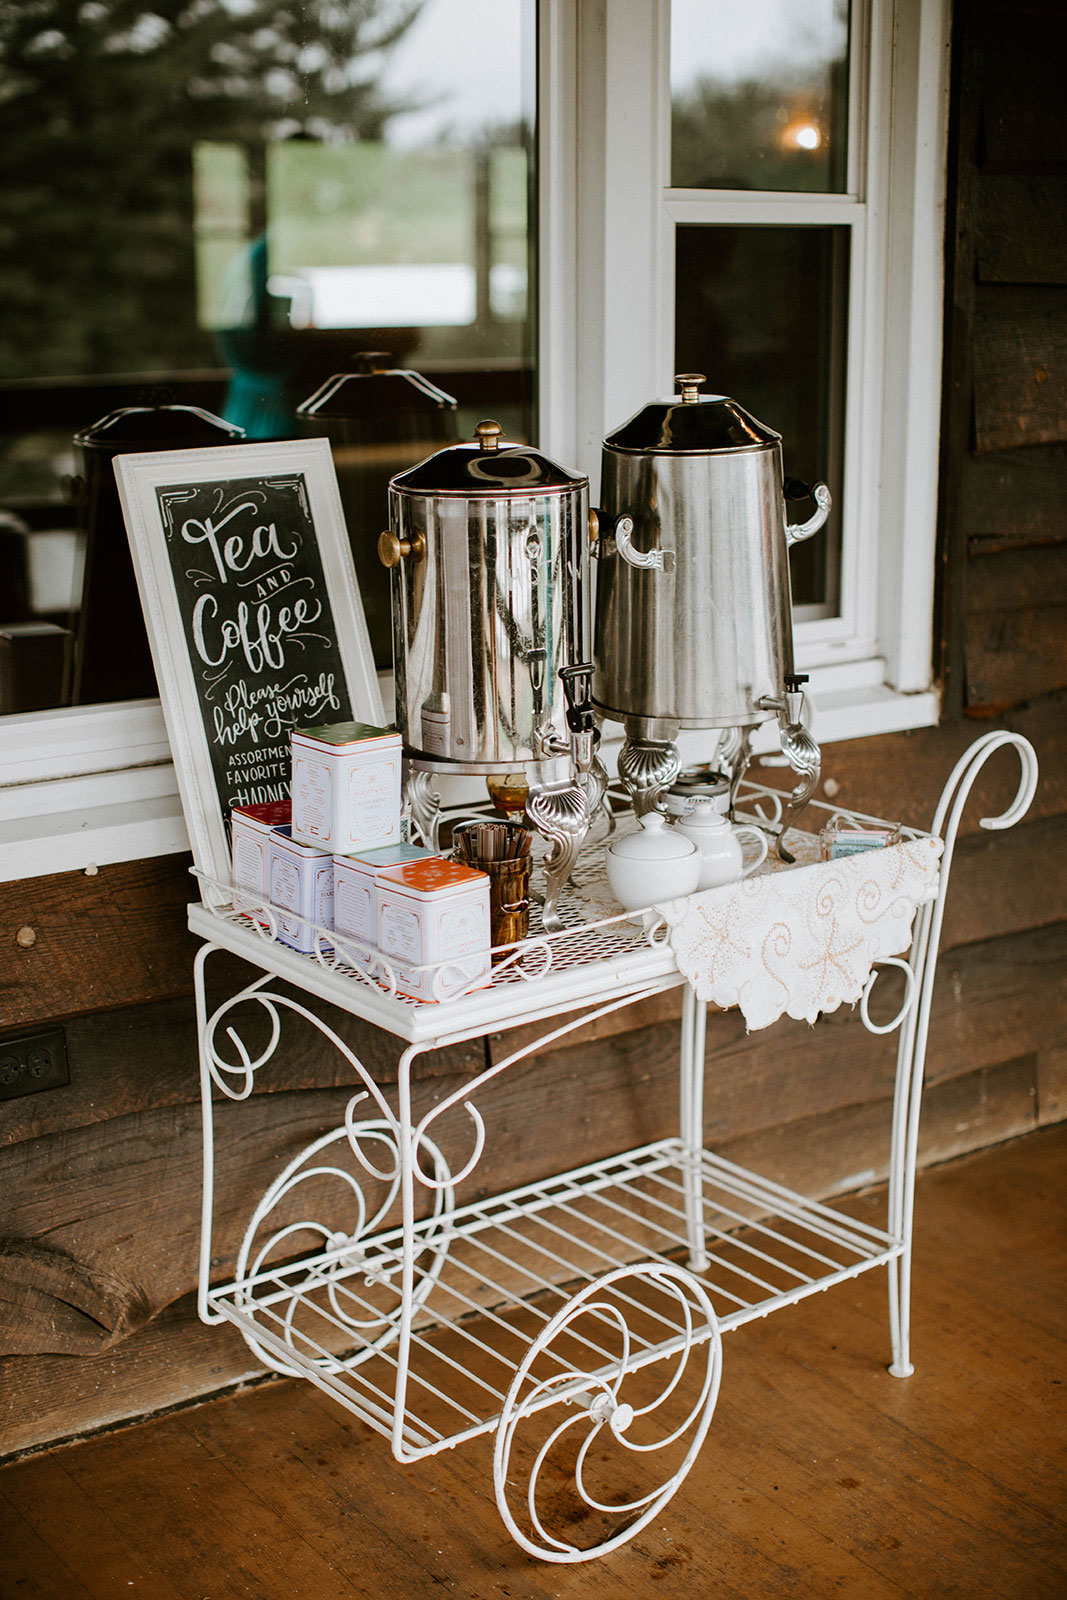 Tea and coffee station - tea party baby shower inspiration - Harney & Sons teas